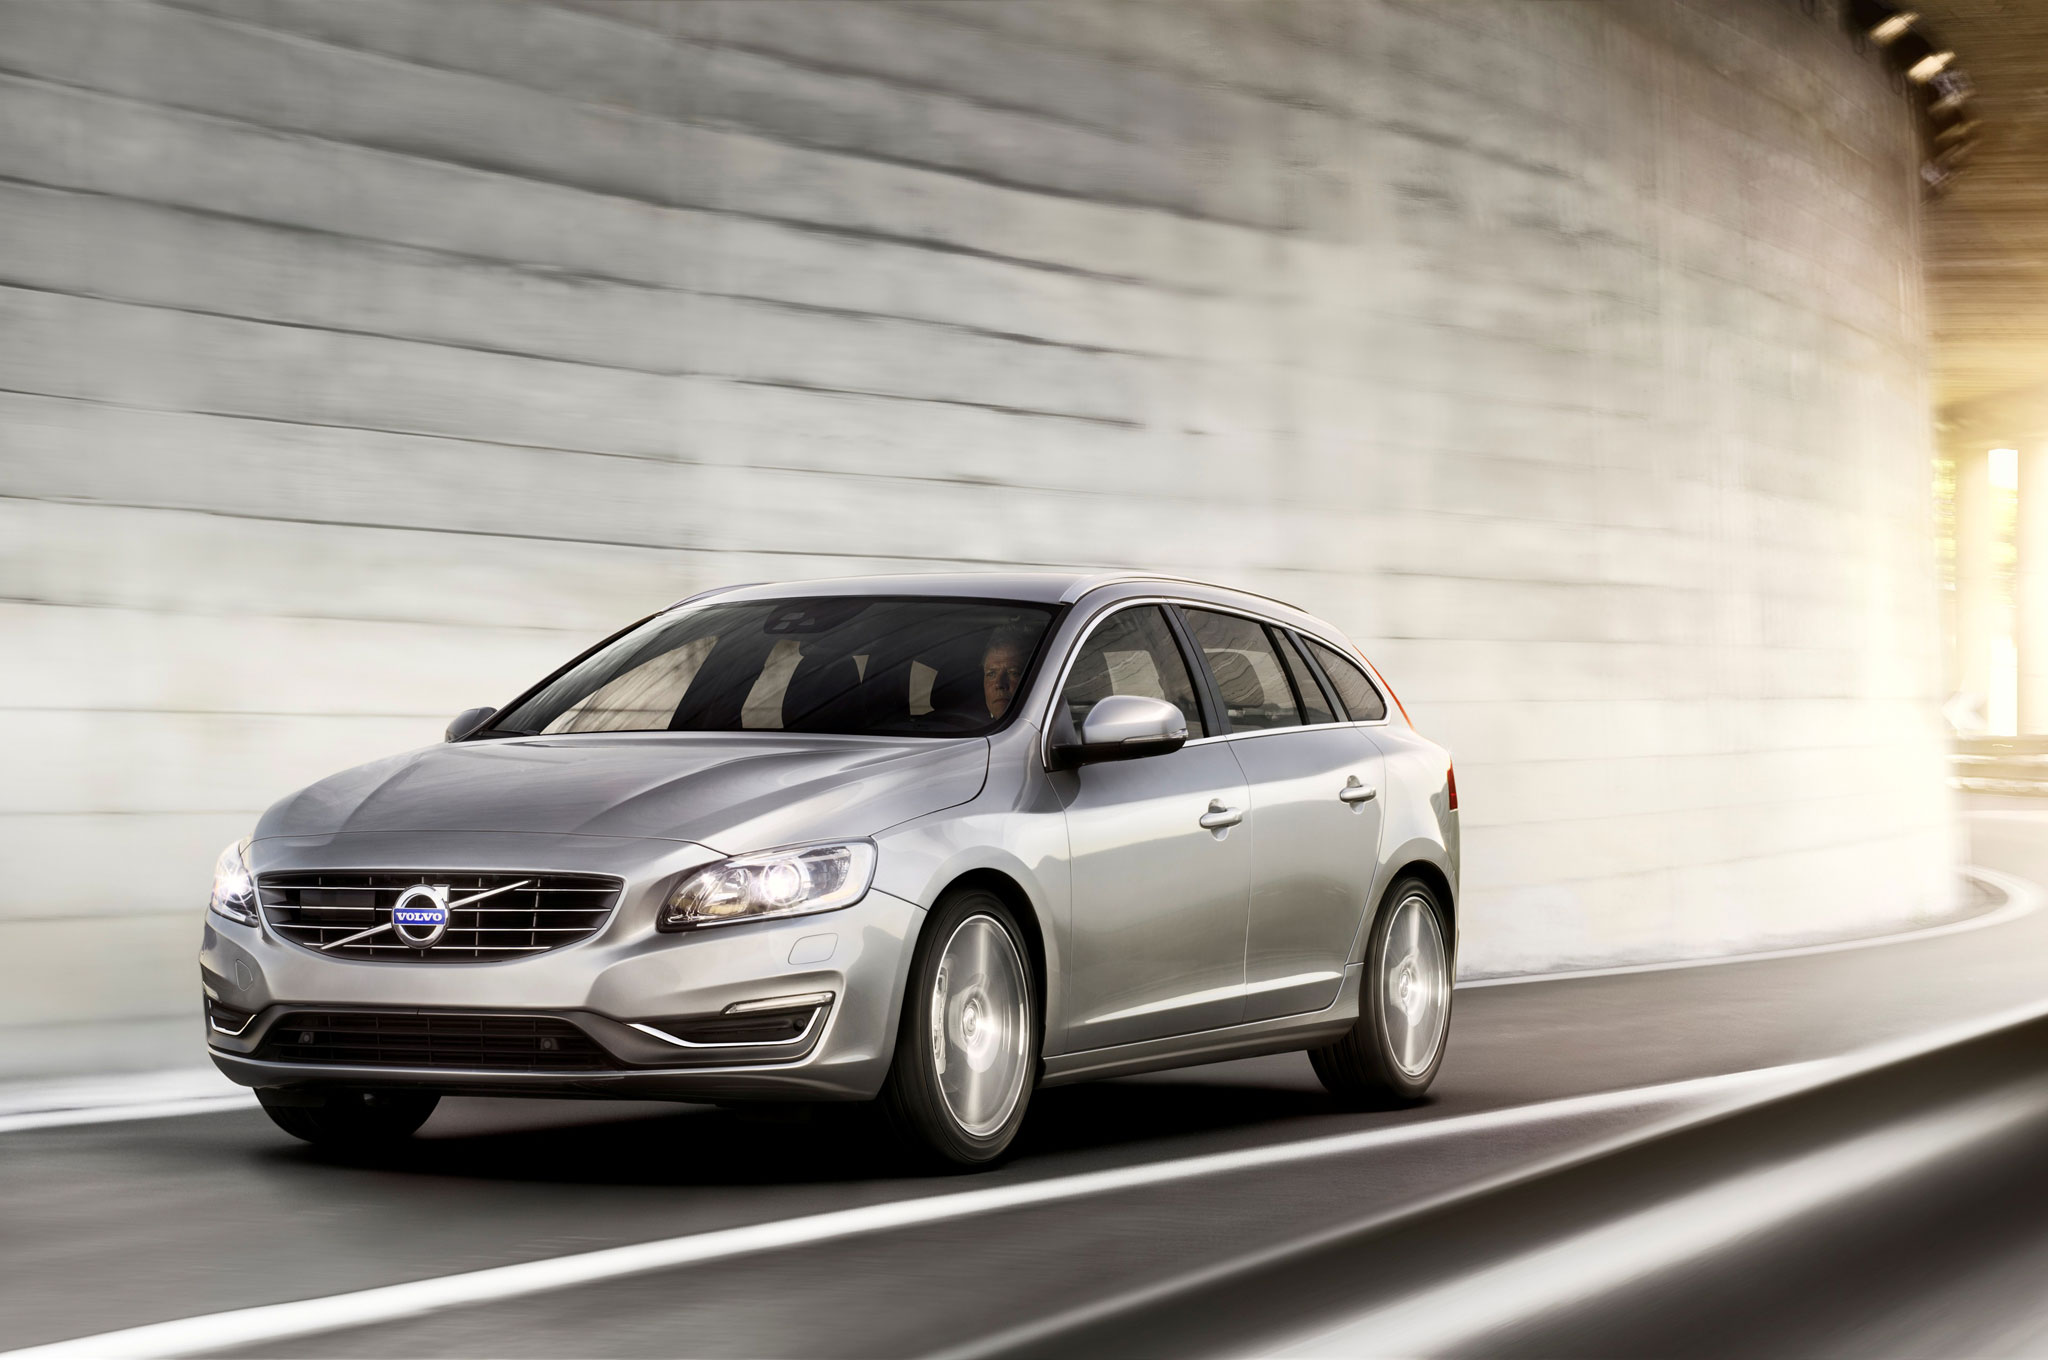 volvo v60 2015. even as volvo v60 2015 s